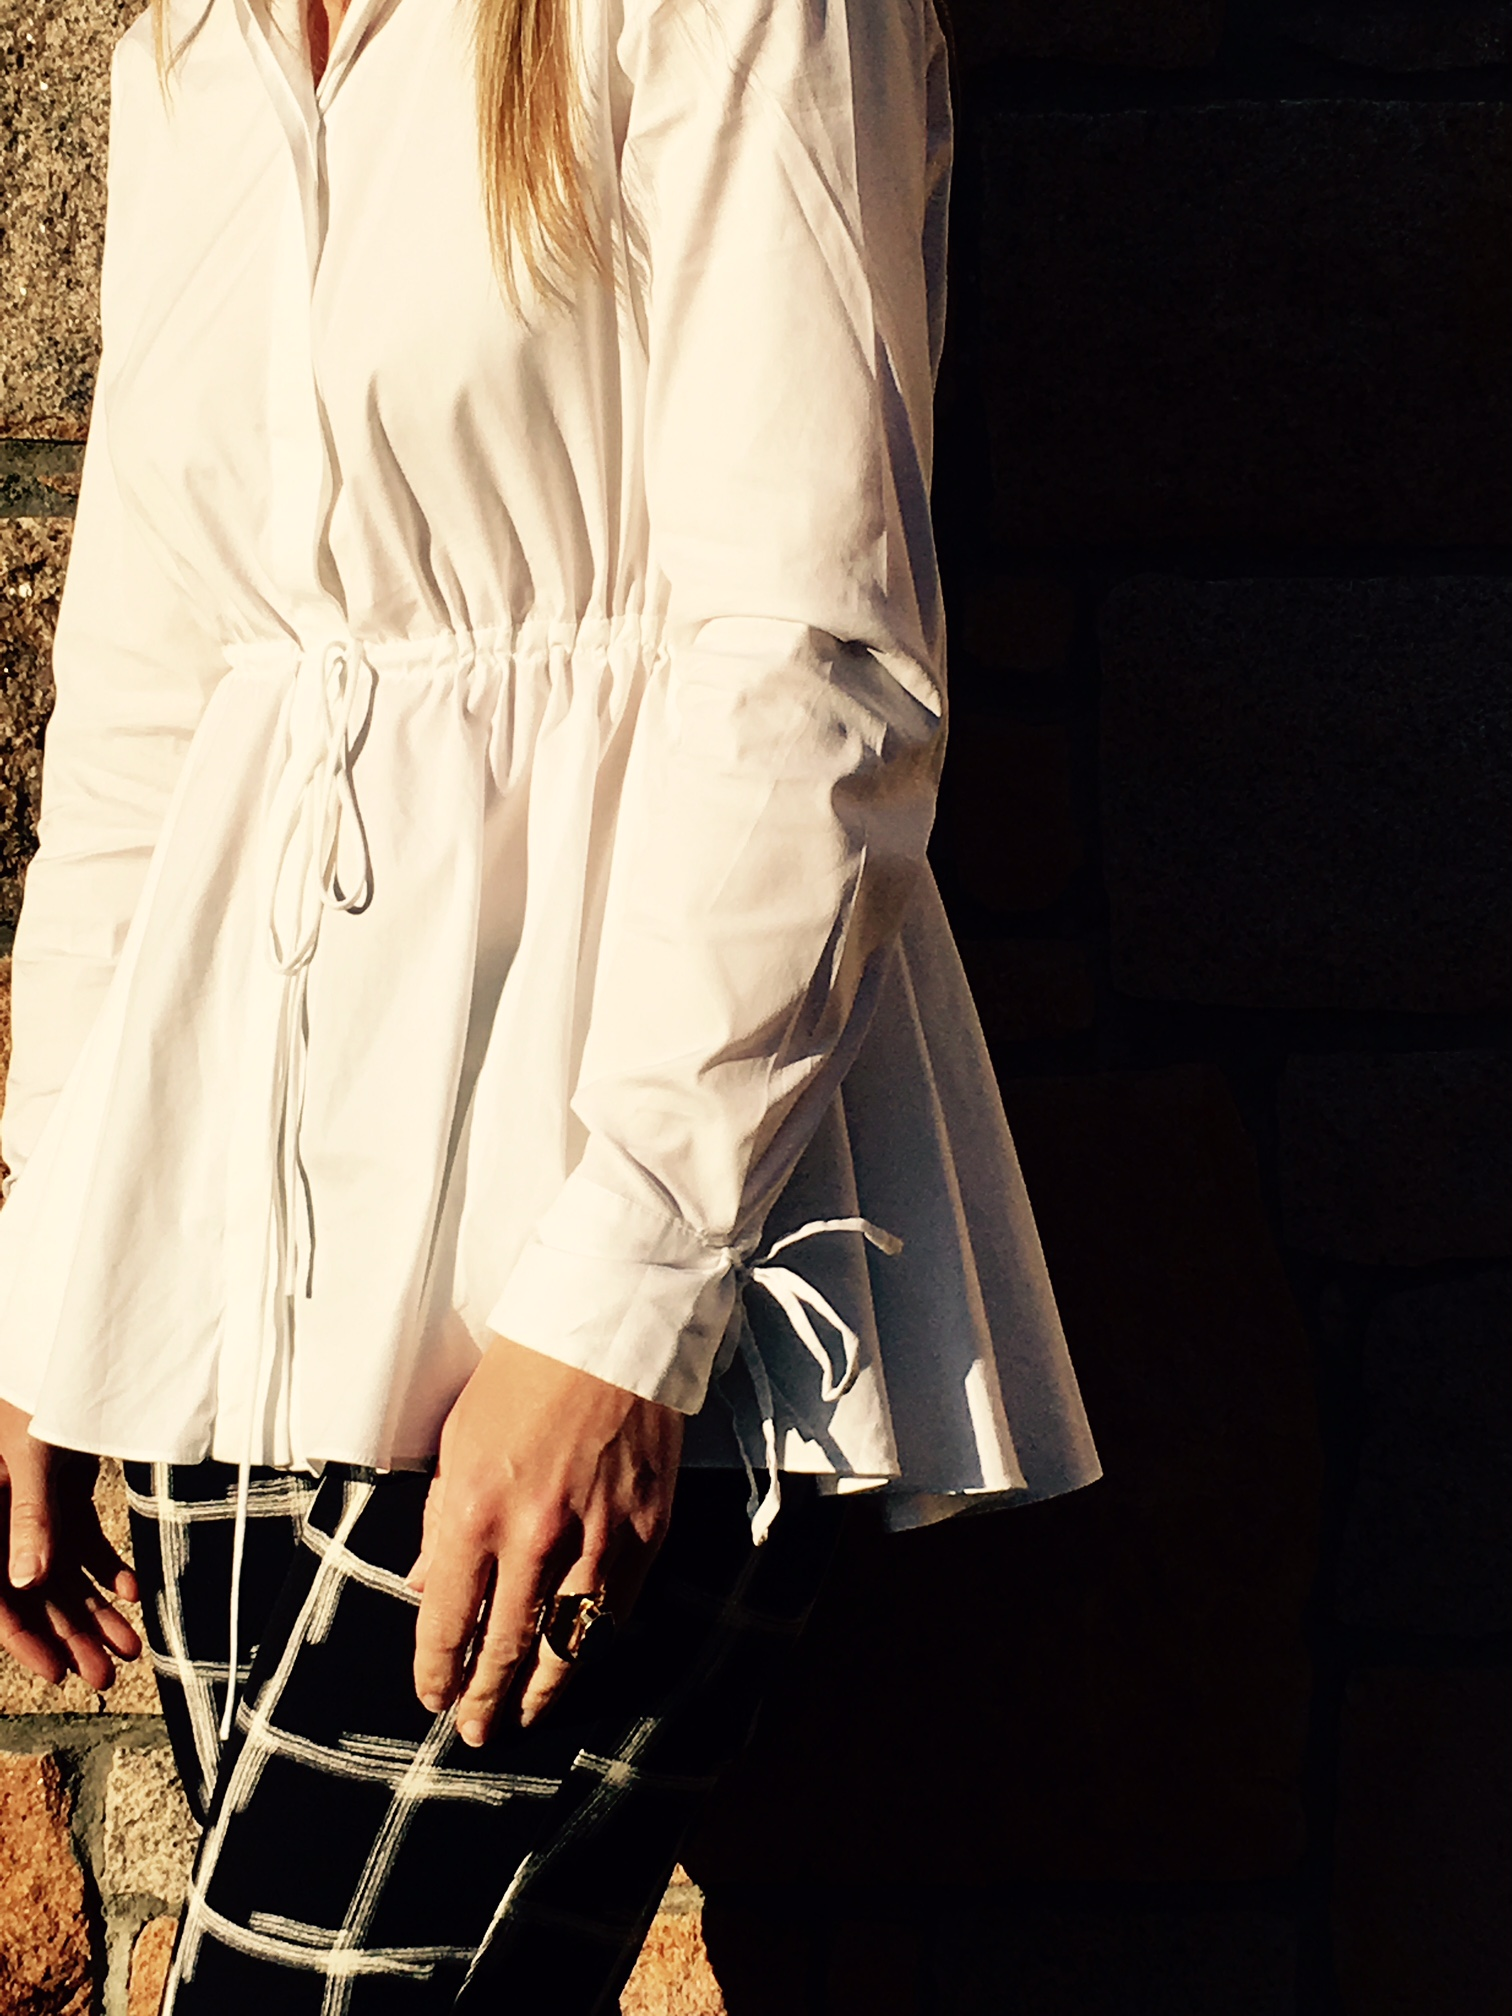 White shirts are classic...but can still be fun and different depending on styling.